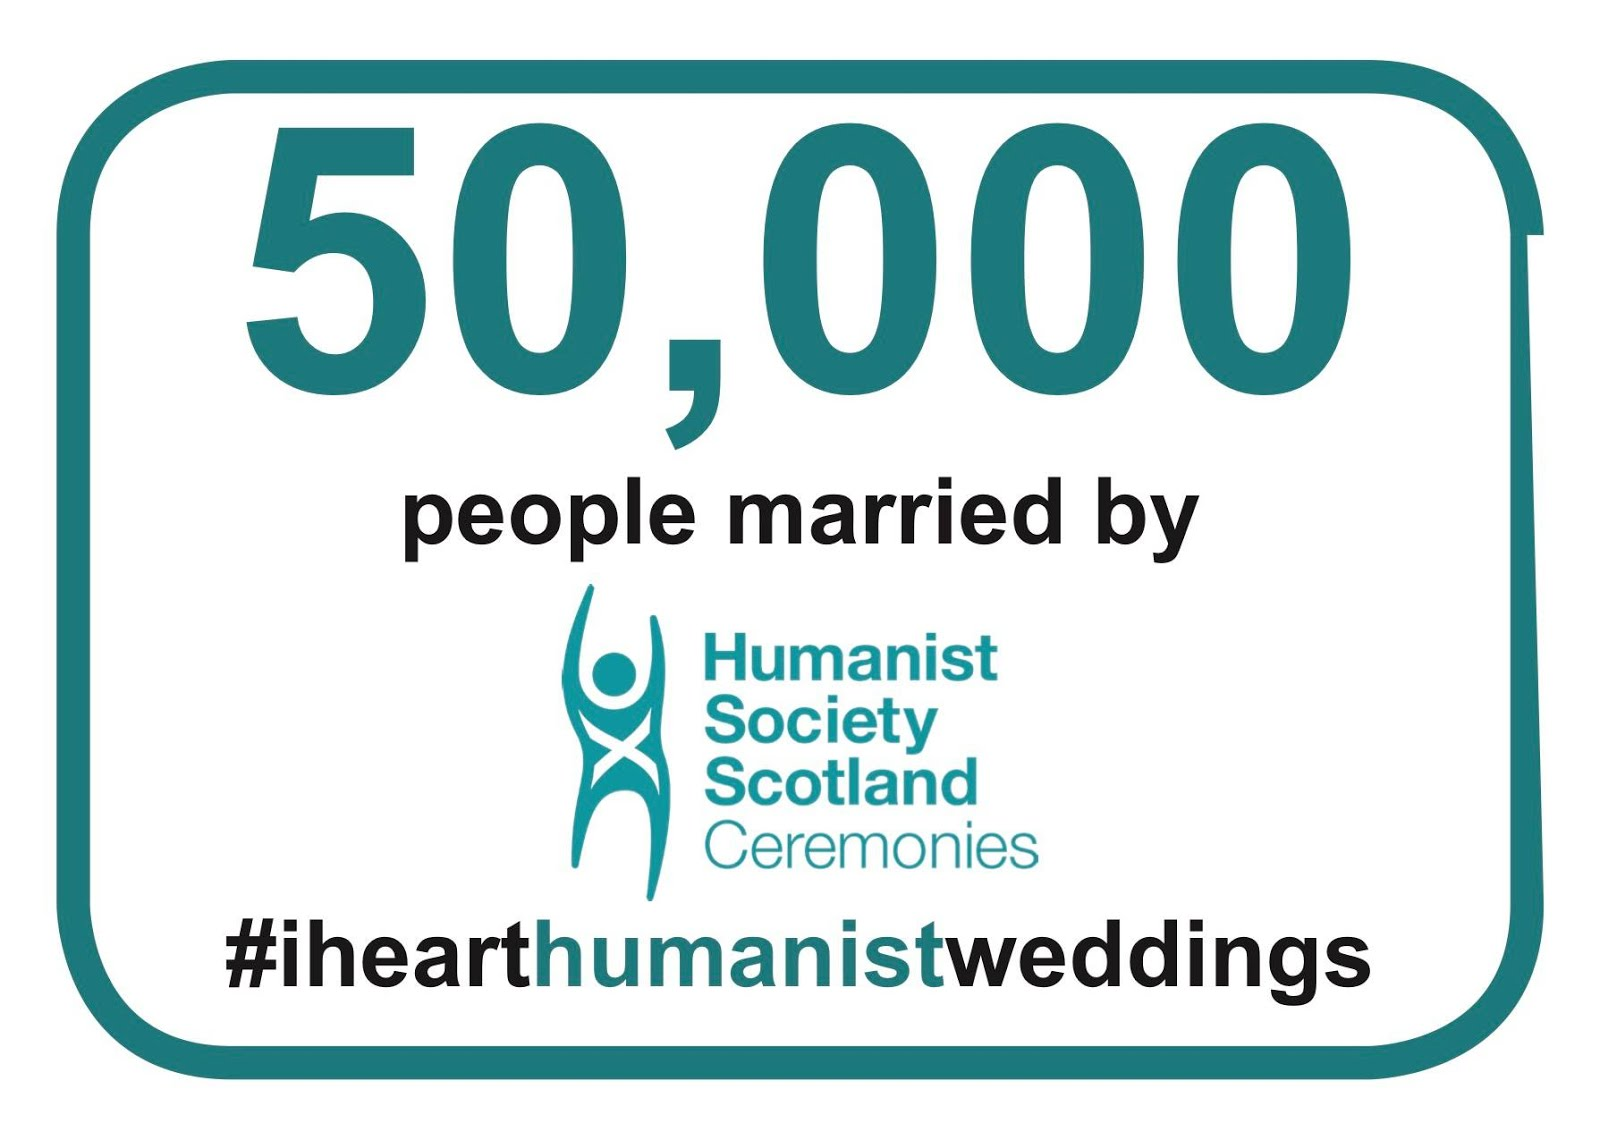 Wow - all these Humanist weddings!